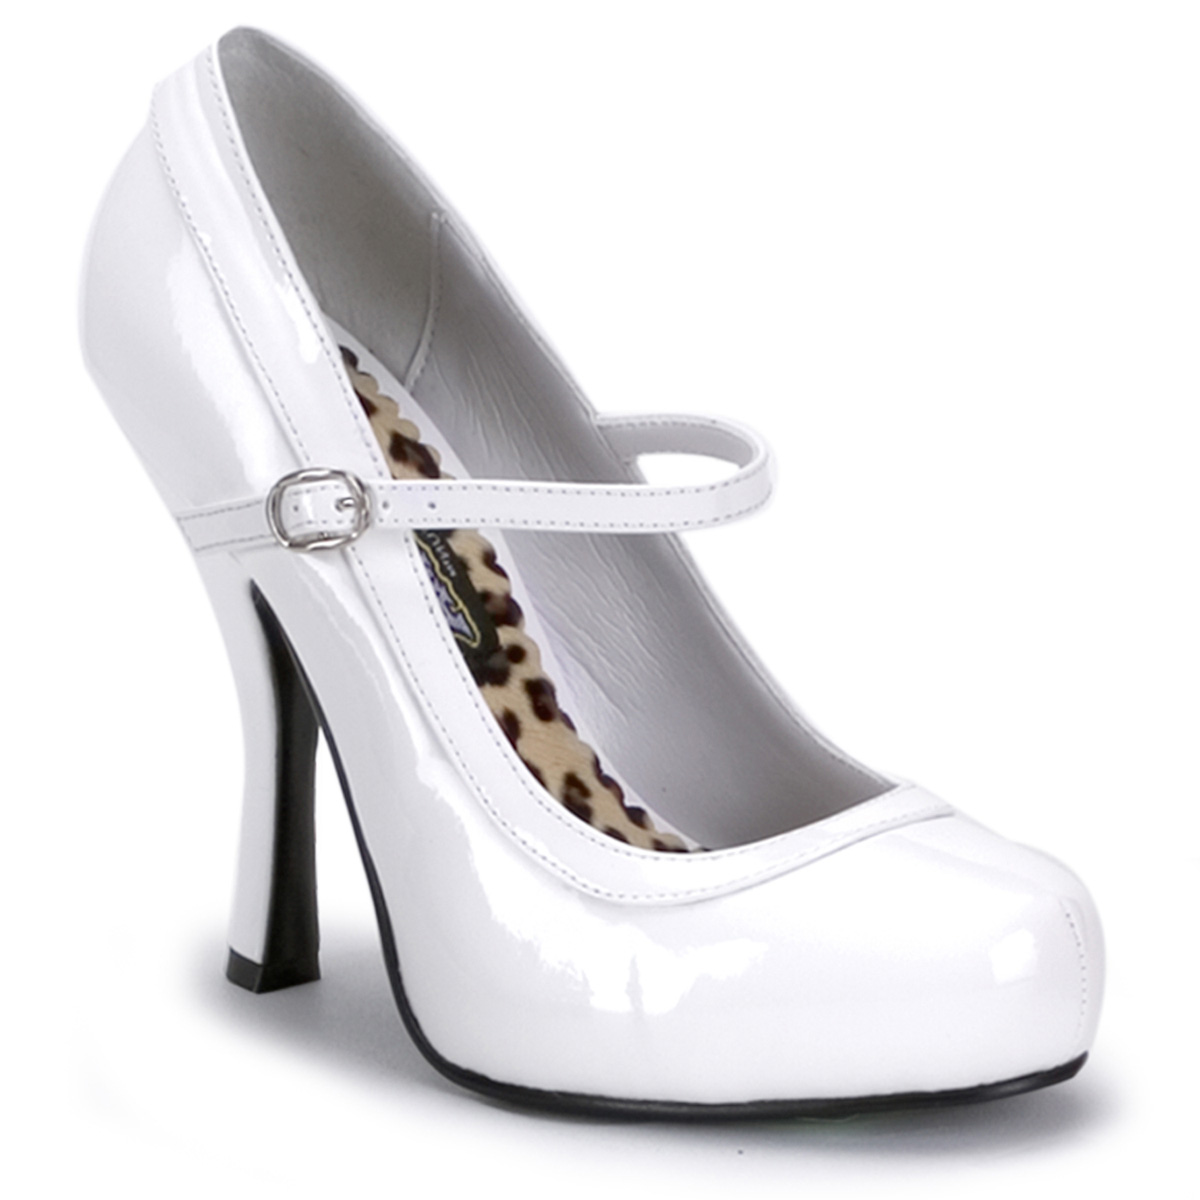 Pleaser Pretty-50 Womens Sexy High Heels Halloween Costume White Mary Janes Pumps Shoes at Sears.com